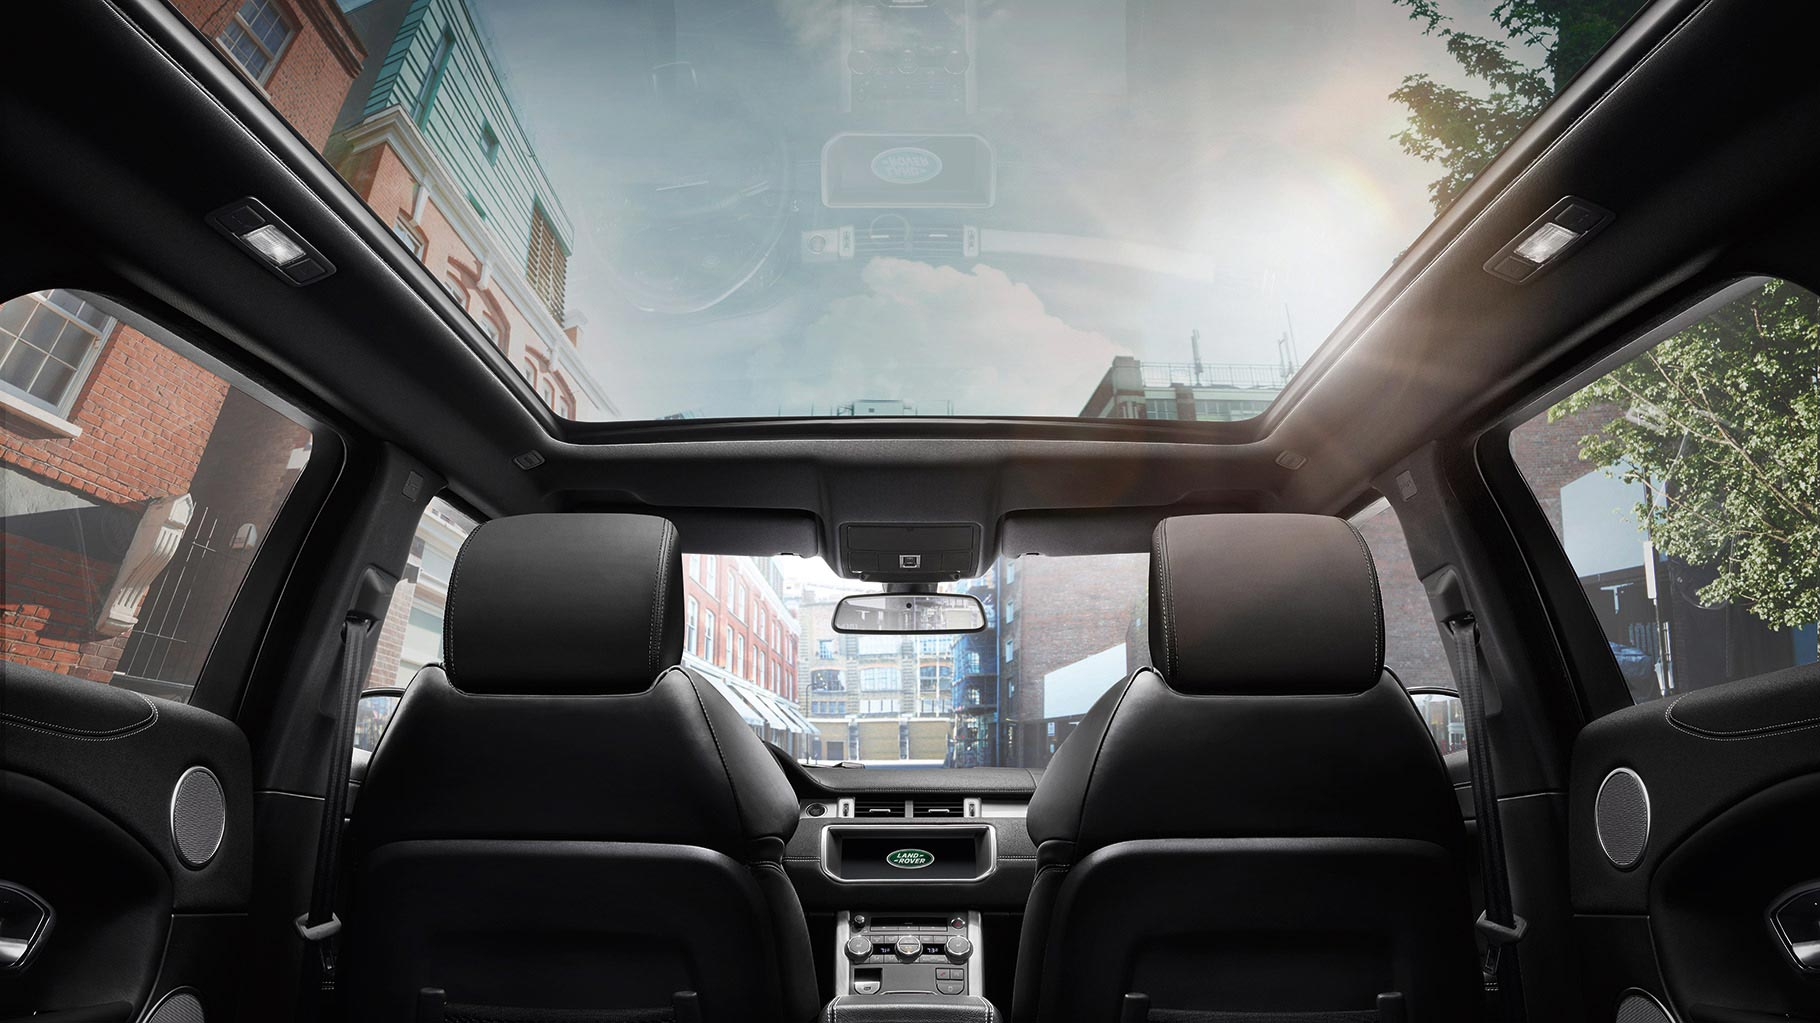 Range Rover Evoque's panoramic roof and in-car entertainment system